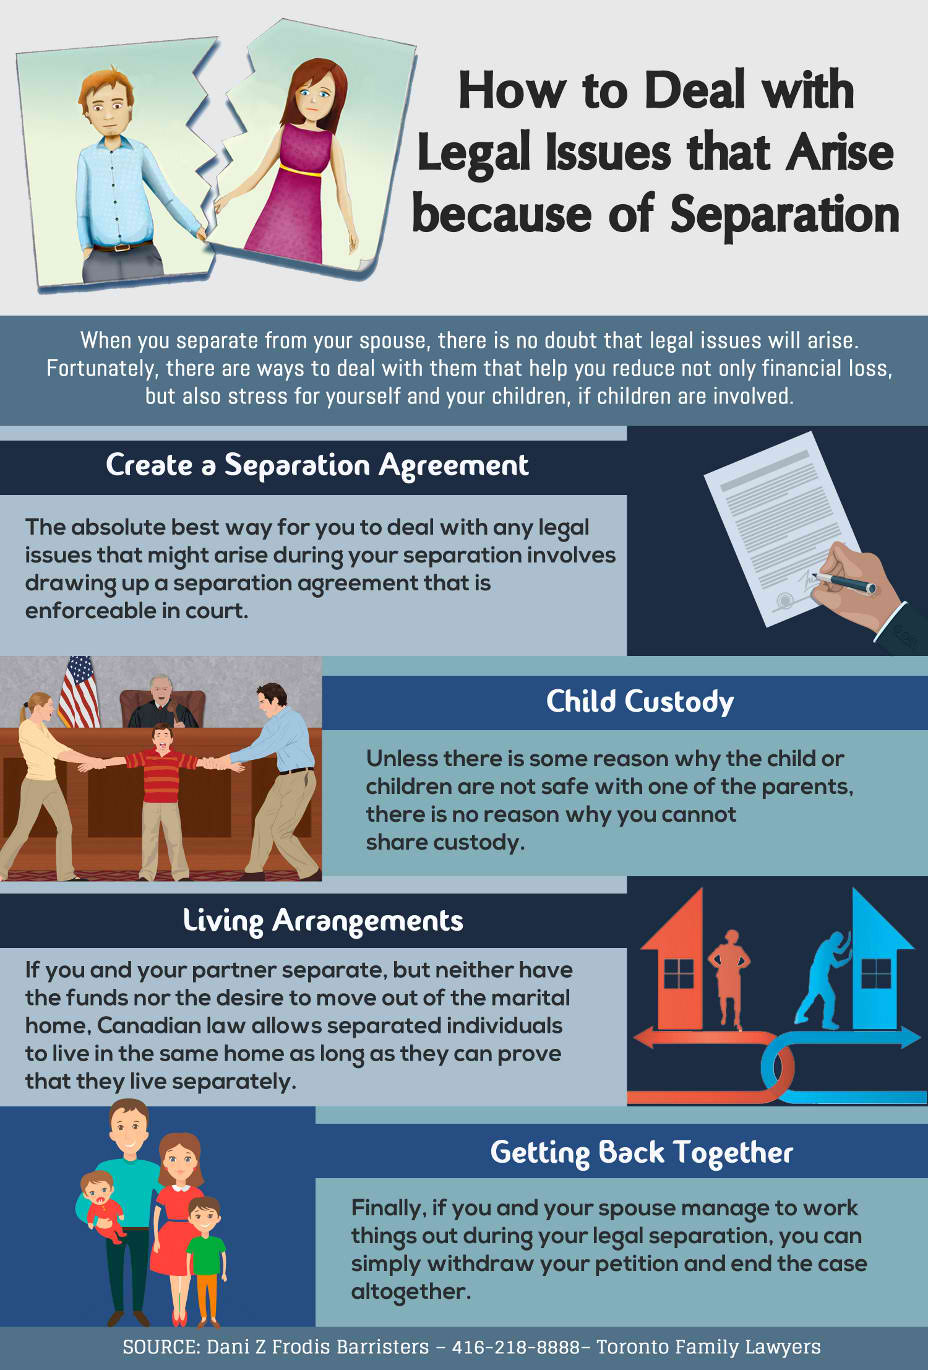 How-to-Deal-with-Legal-Issues-that-Arise-because-of-Separation